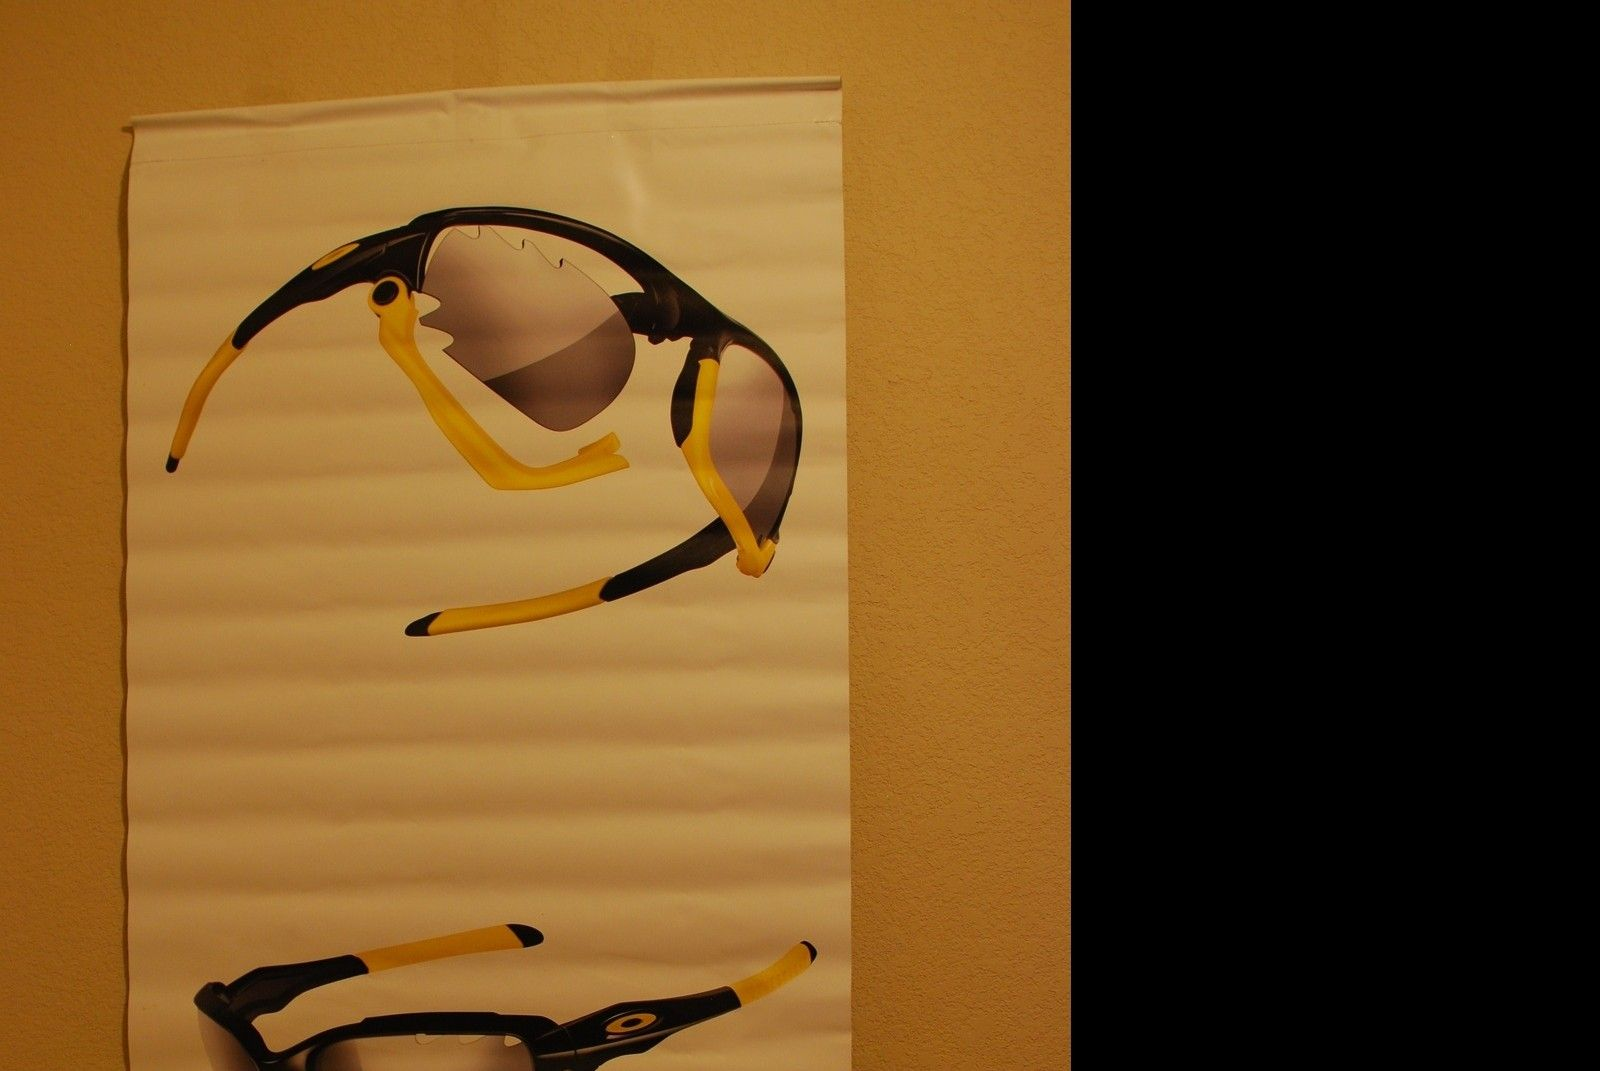 RARE Lance Armstrong Store Front Poster Displays - DFW Texas - 4t8k.jpg